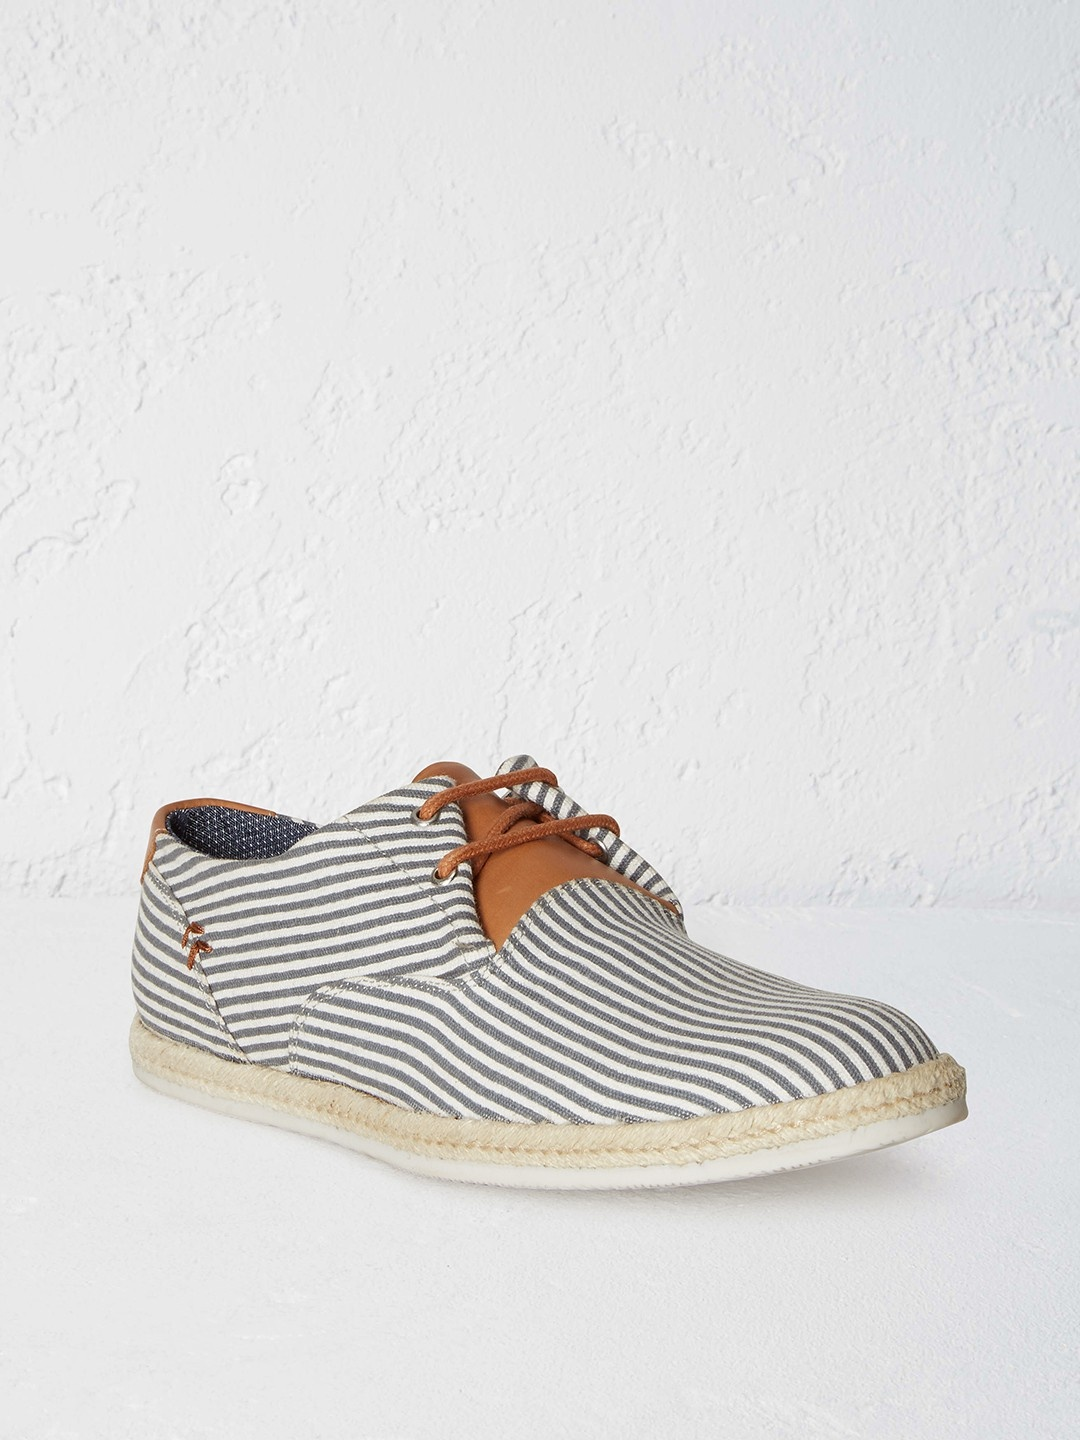 mens stripe espadrille shoe s shoes white stuff